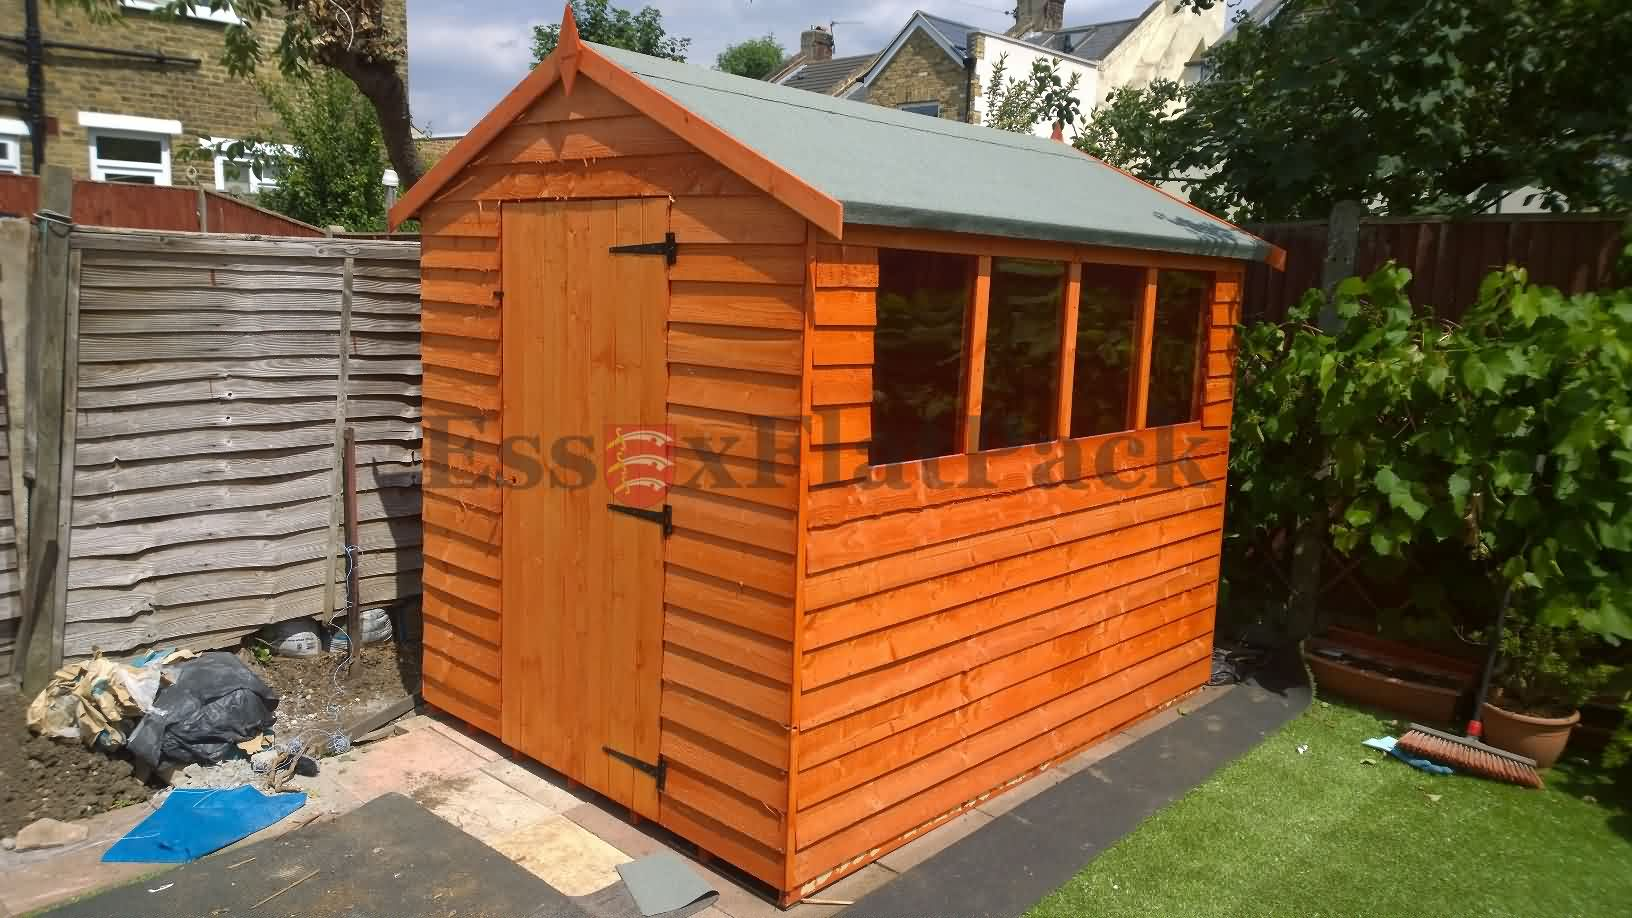 shed-installation-and-assembly-service-117.jpg